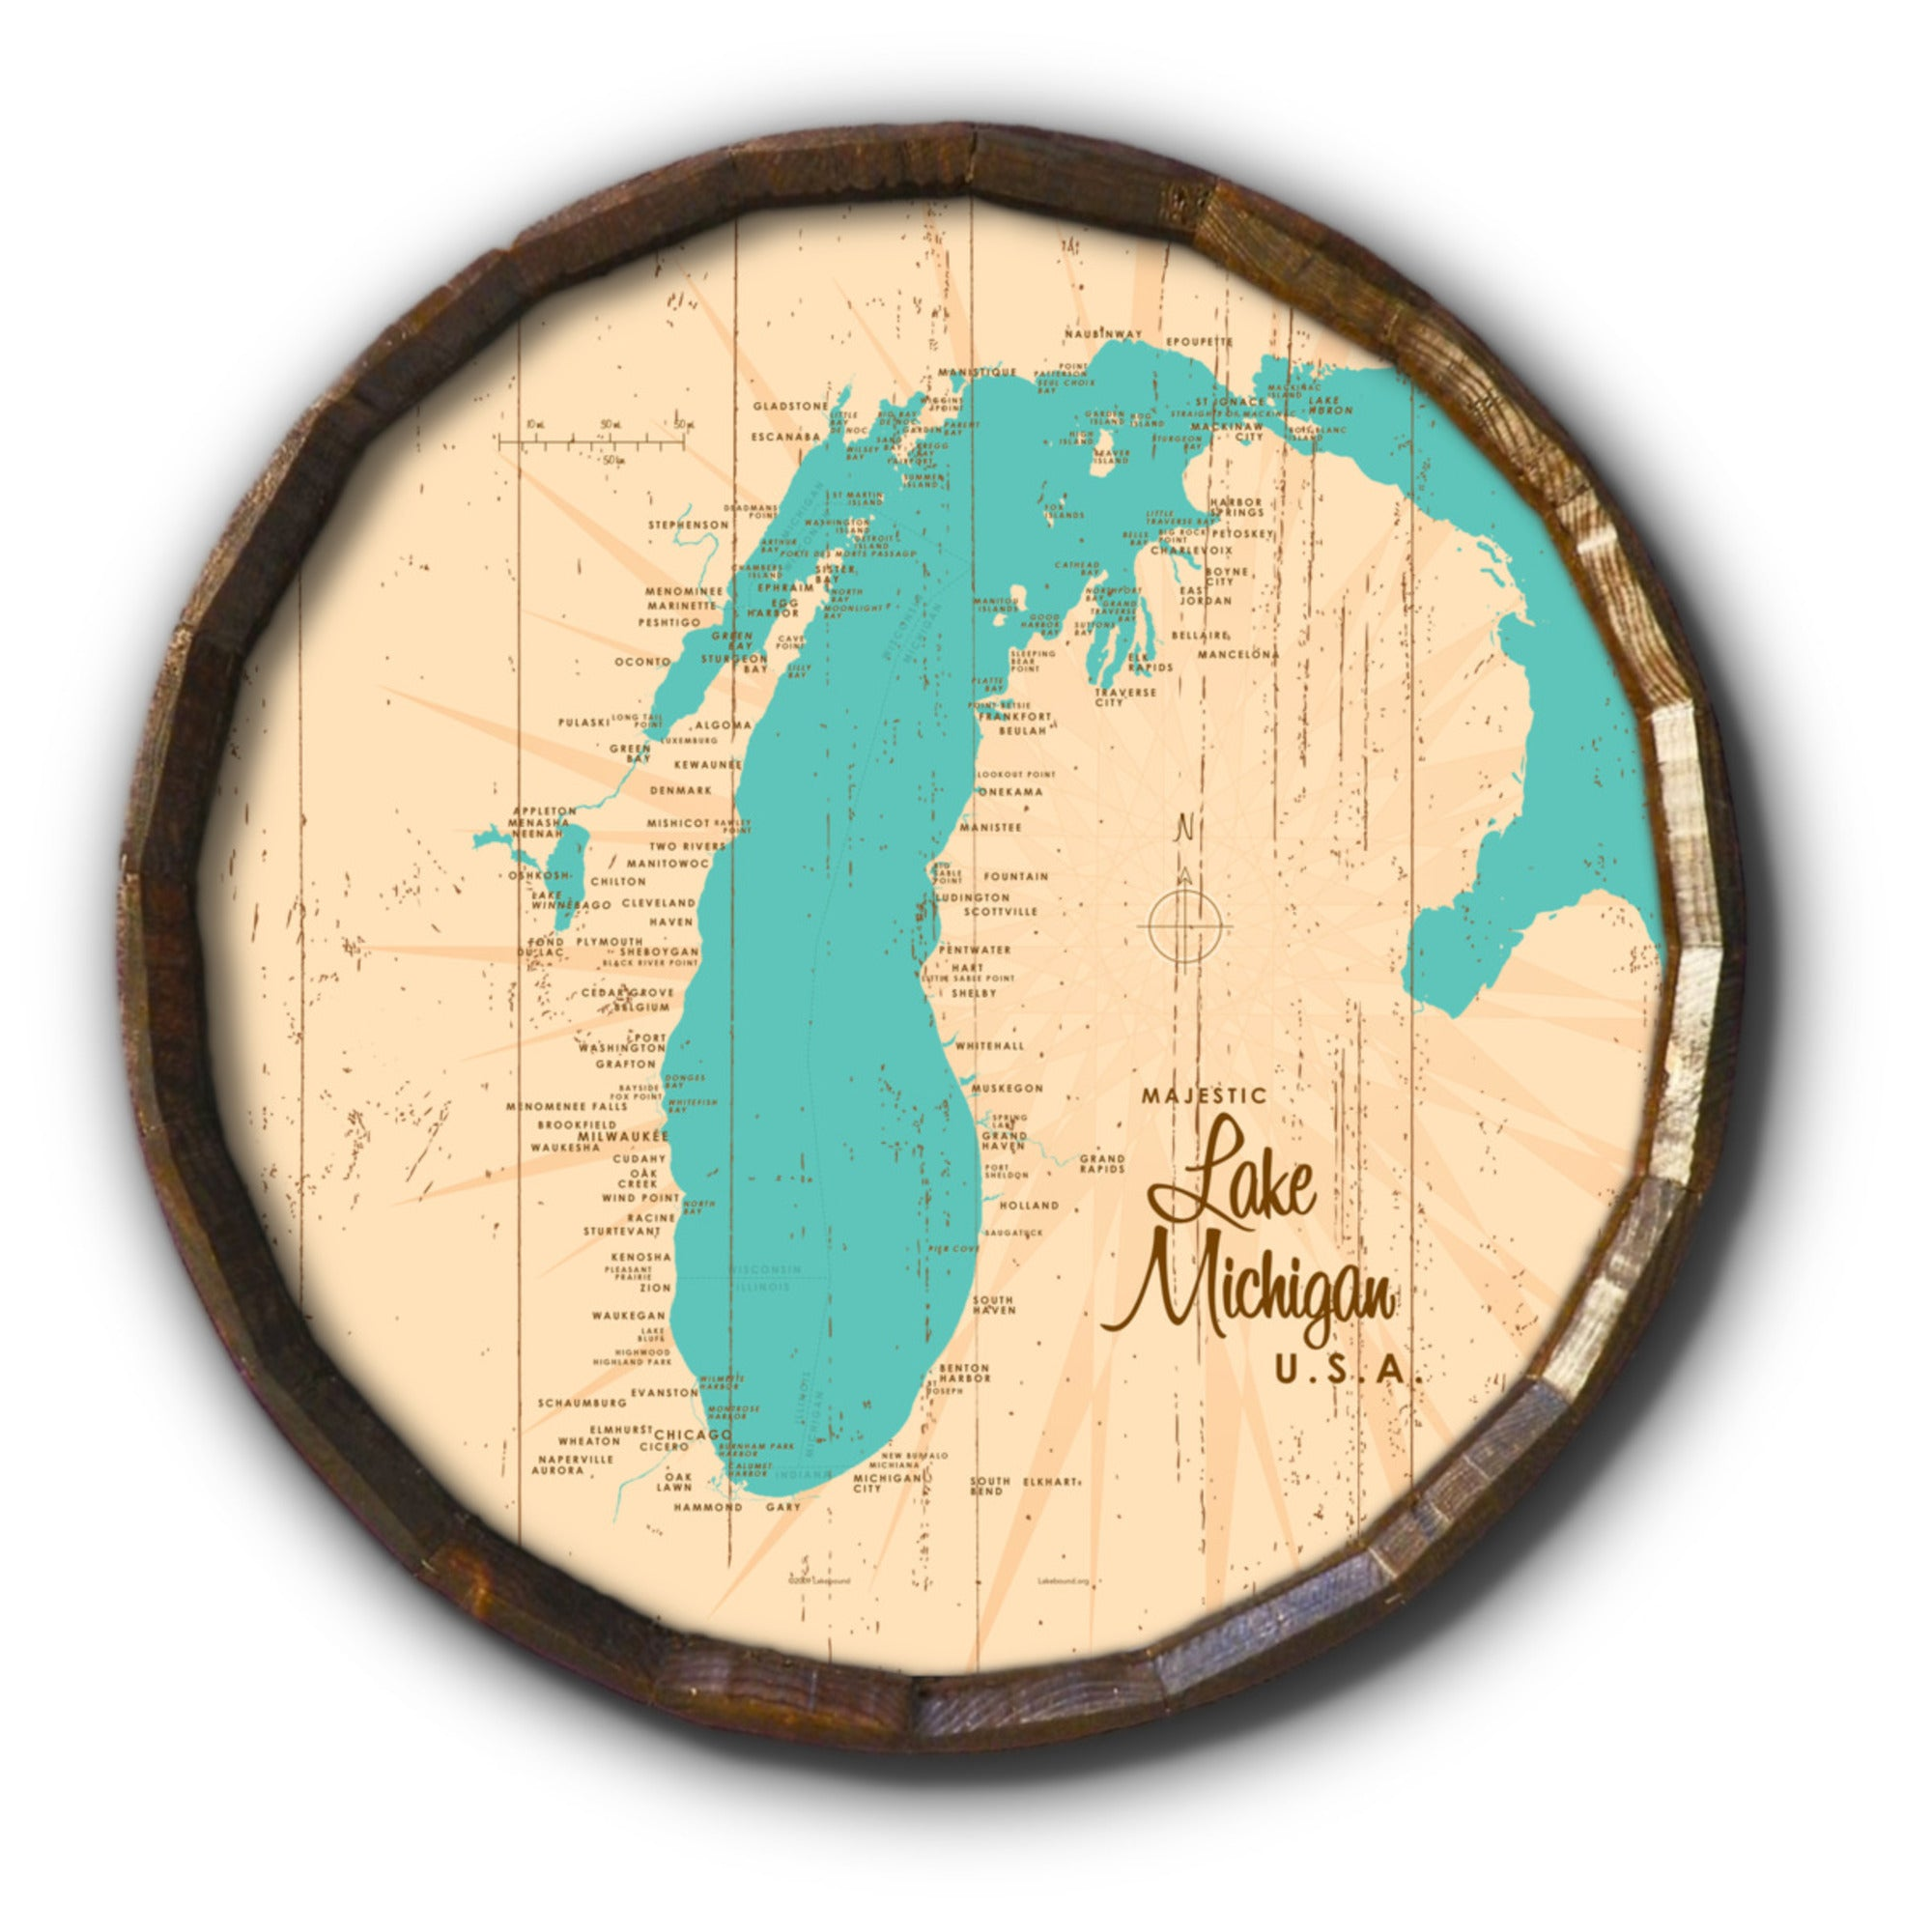 Lake Michigan Michigan, Rustic Barrel End Map Art